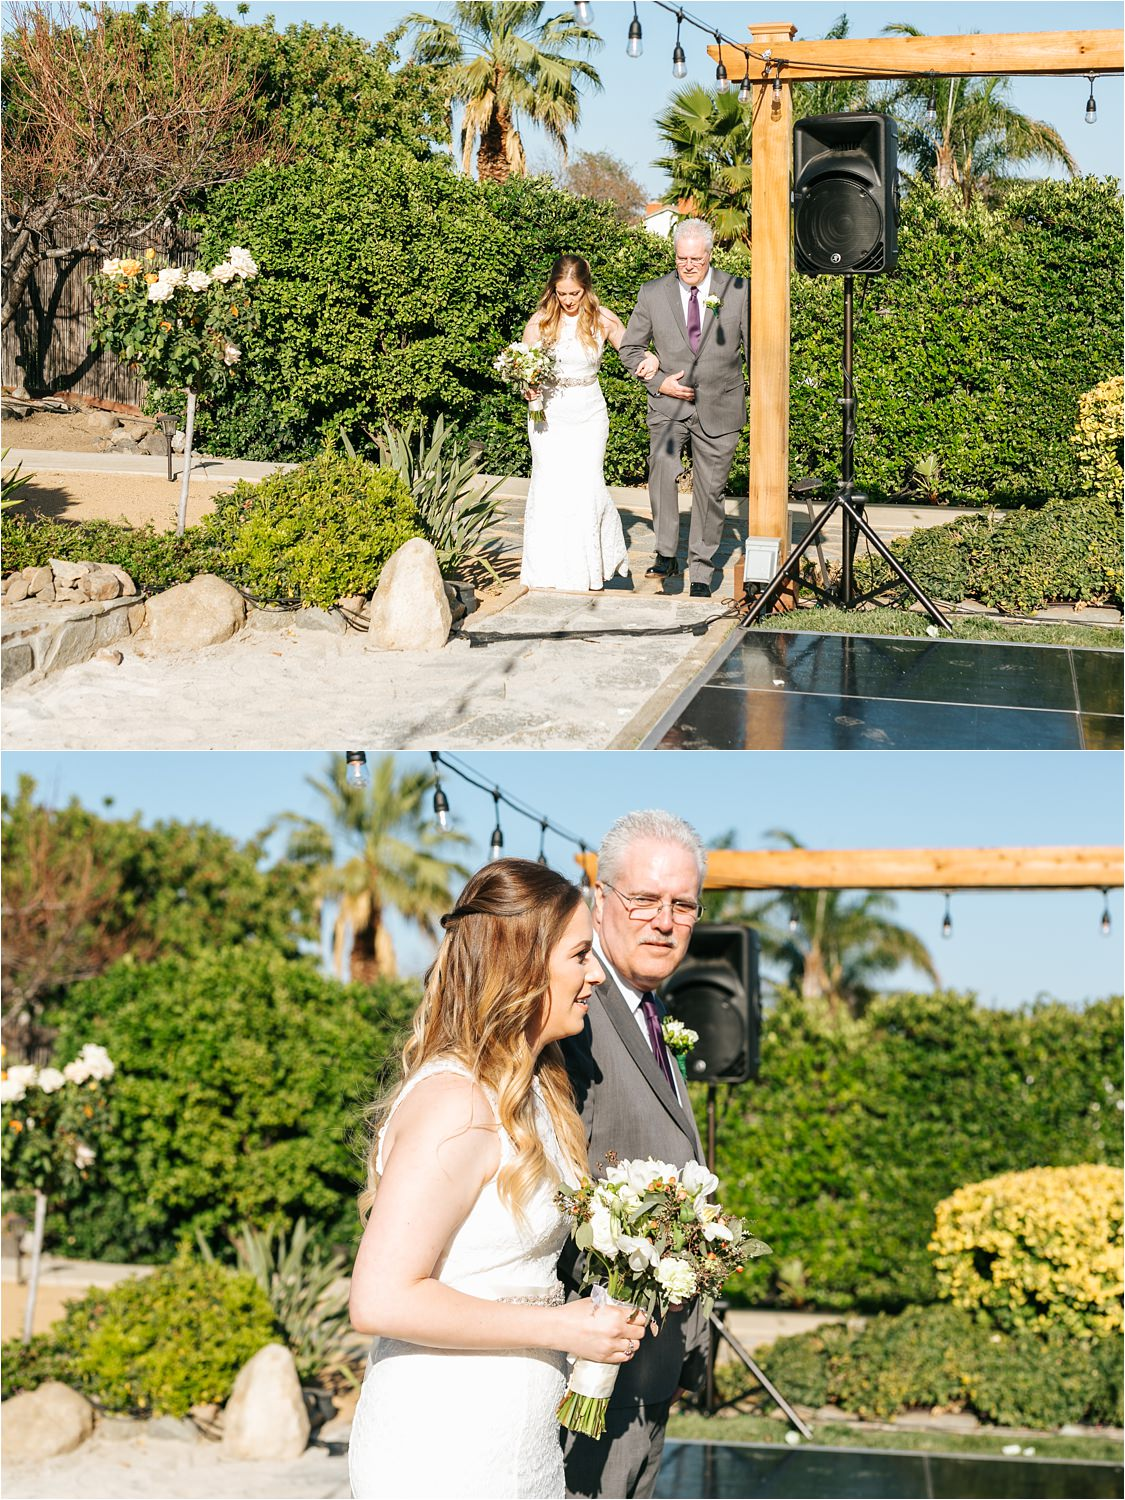 Backyard Wedding Ceremony - Bride walking down the aisle with her dad - https://brittneyhannonphotography.com